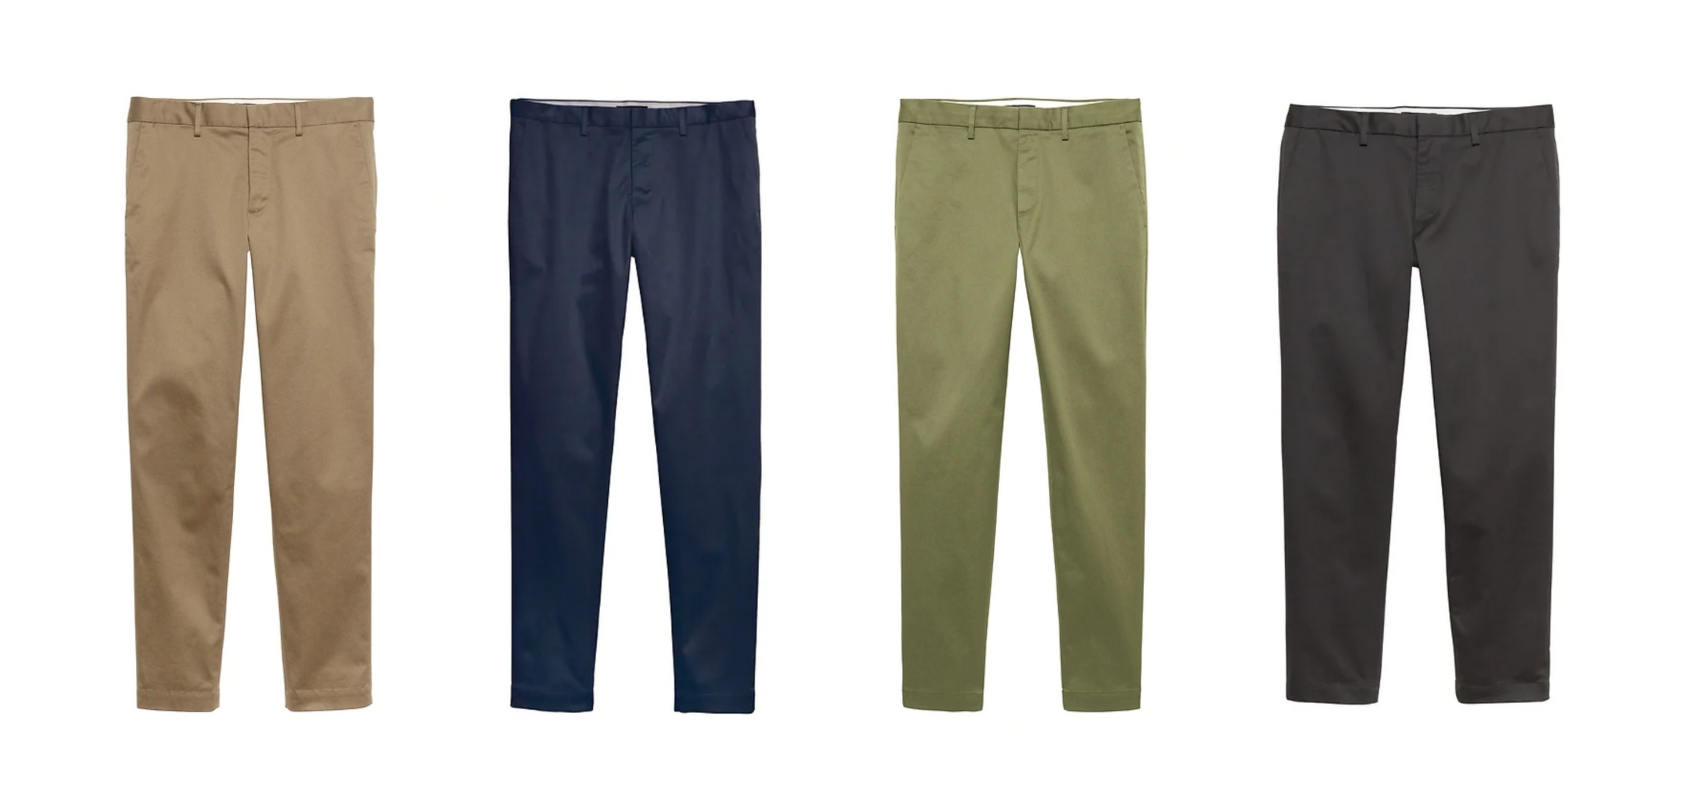 Minimalist chinos collection